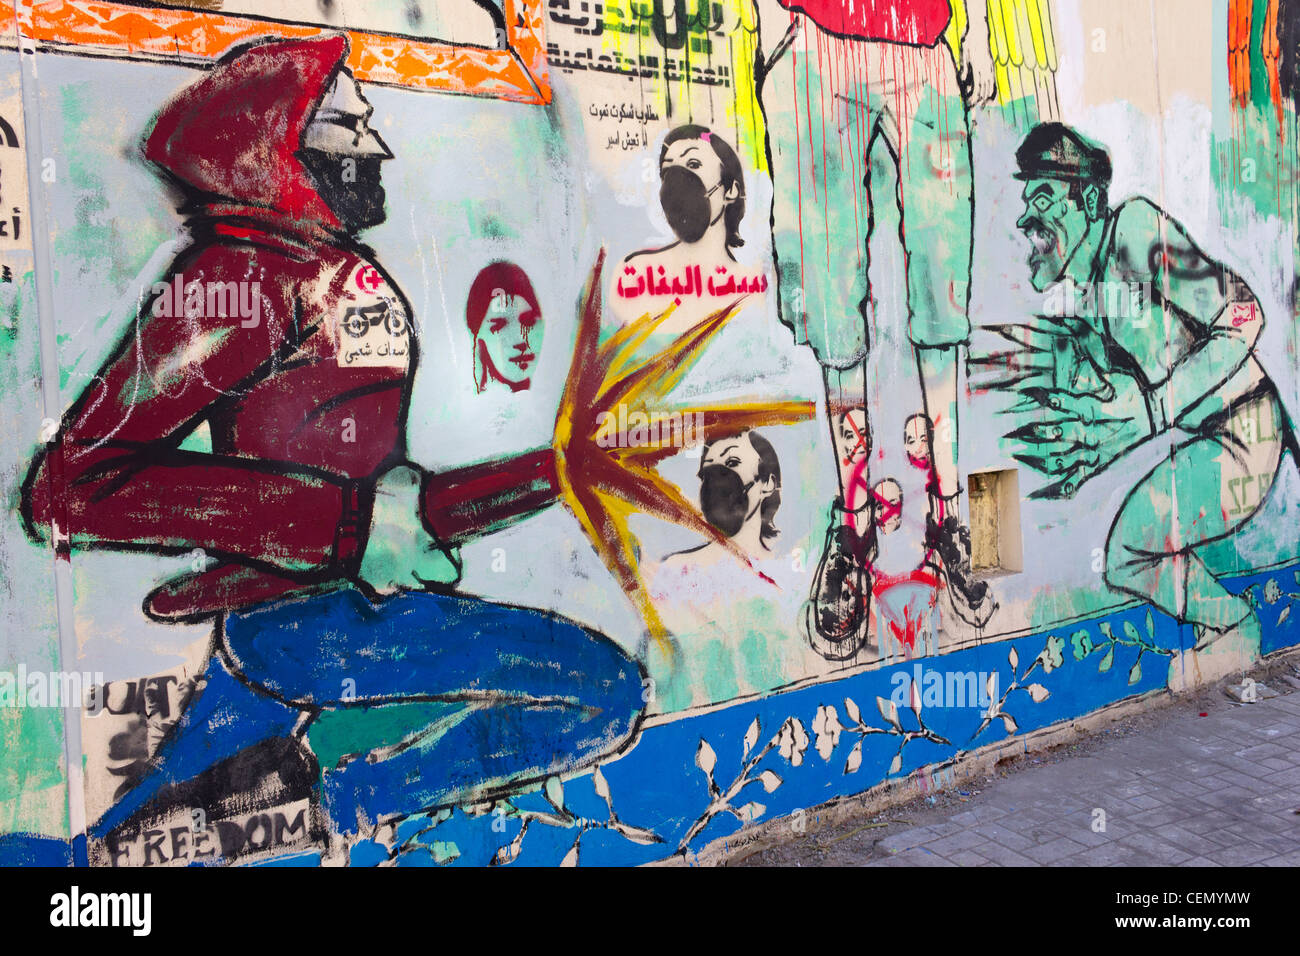 wall painting of revolutionary fighter attacking soldier, Mohamed Mahmoud street, near Tahrir Square, Cairo, Egypt Stock Photo